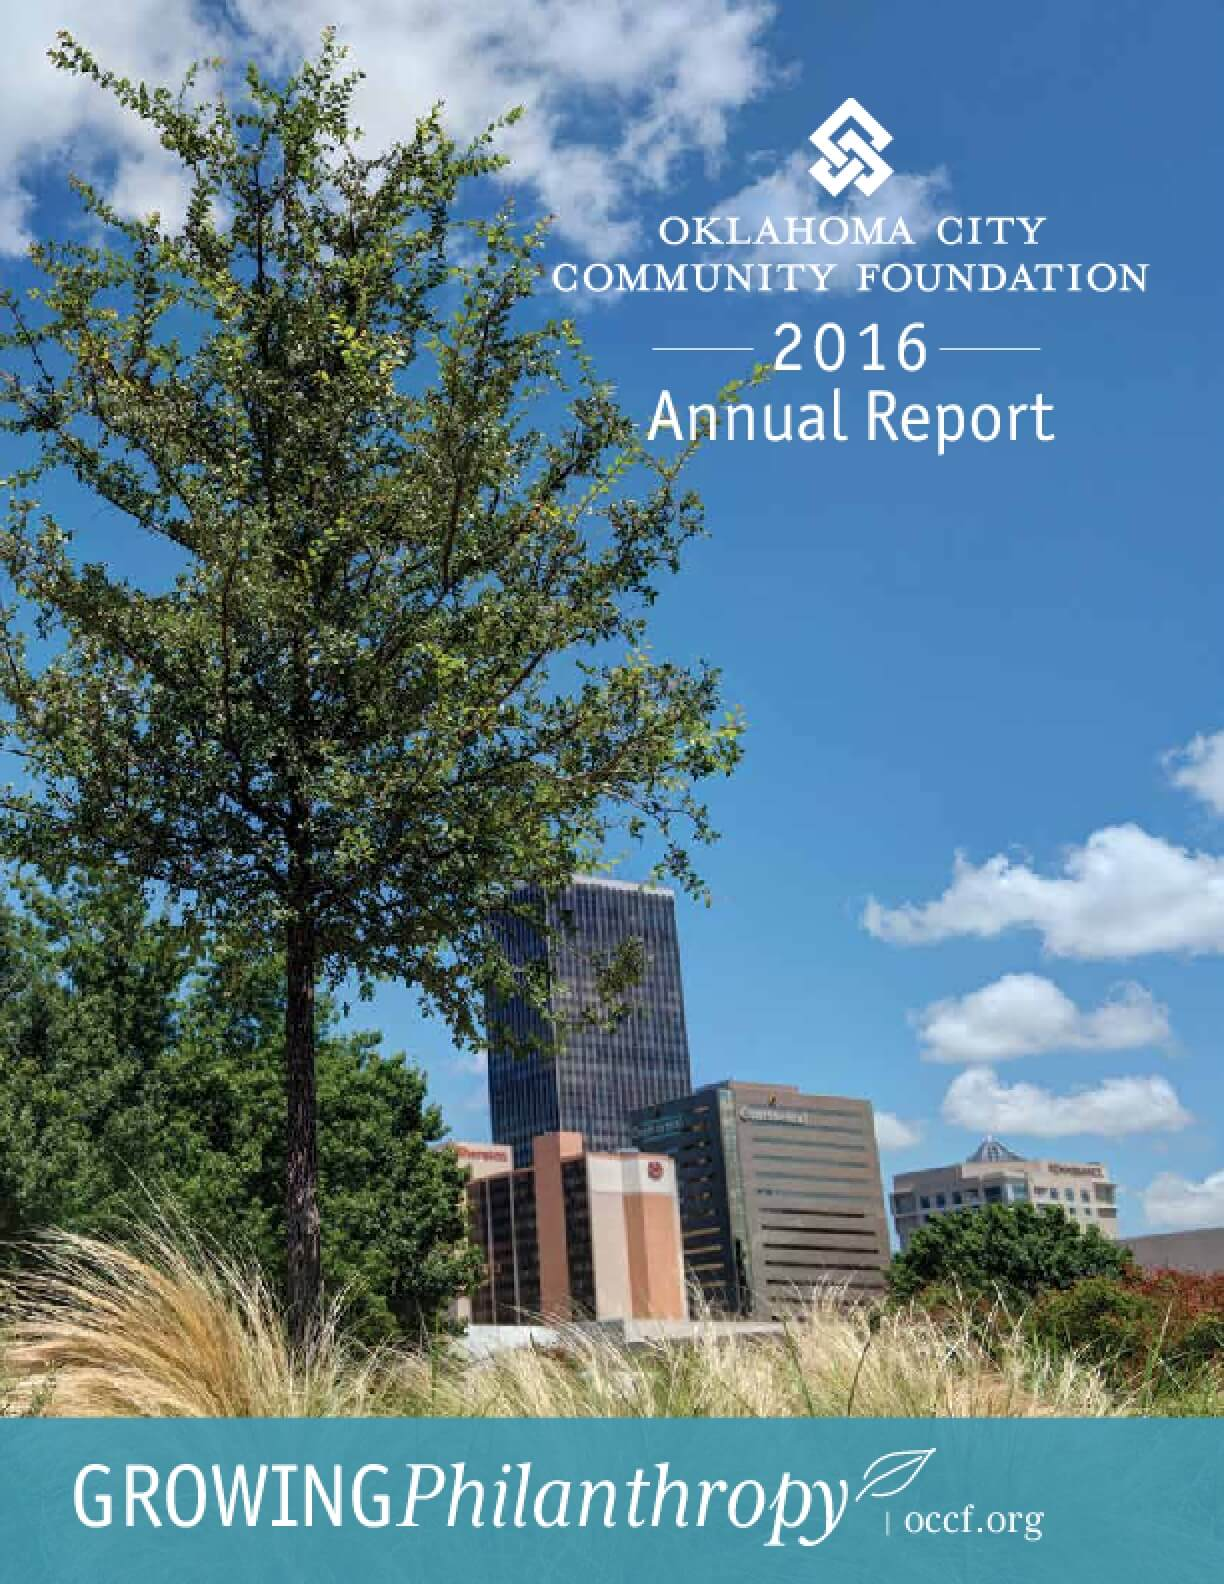 Oklahoma City Community Foundation 2016 Annual Report